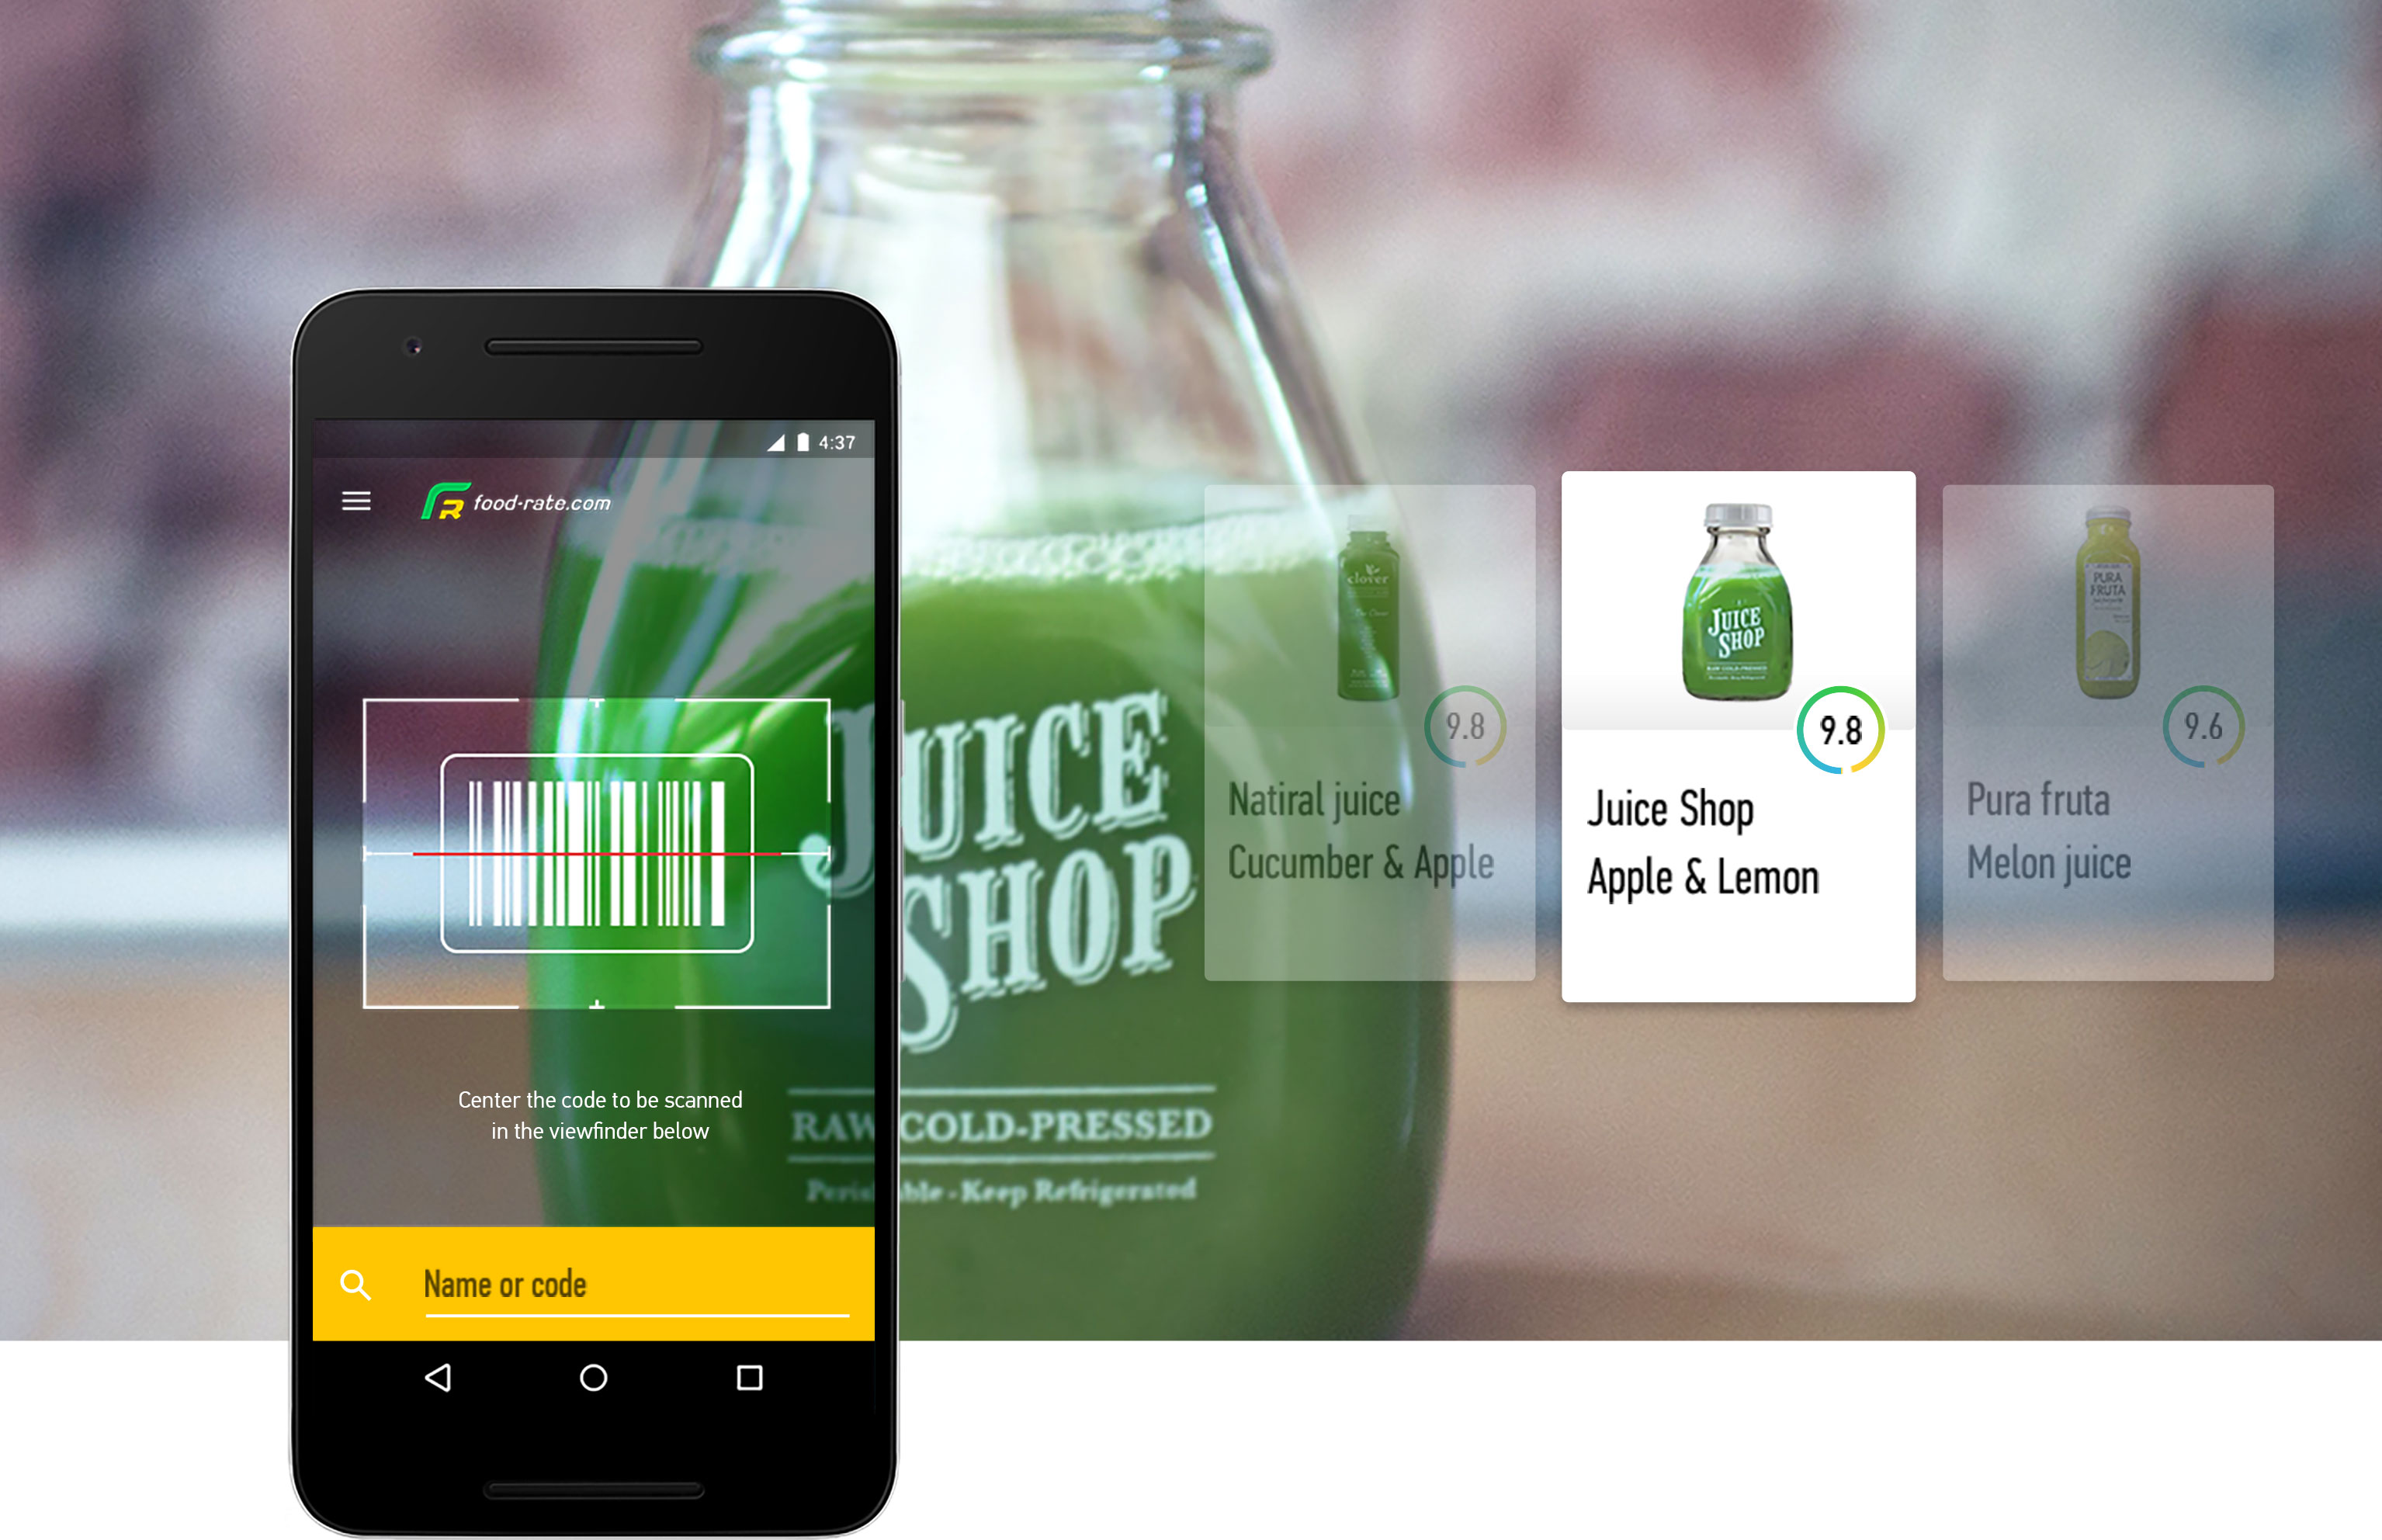 Food-rate   Food Rating App with a Barcode Scanner